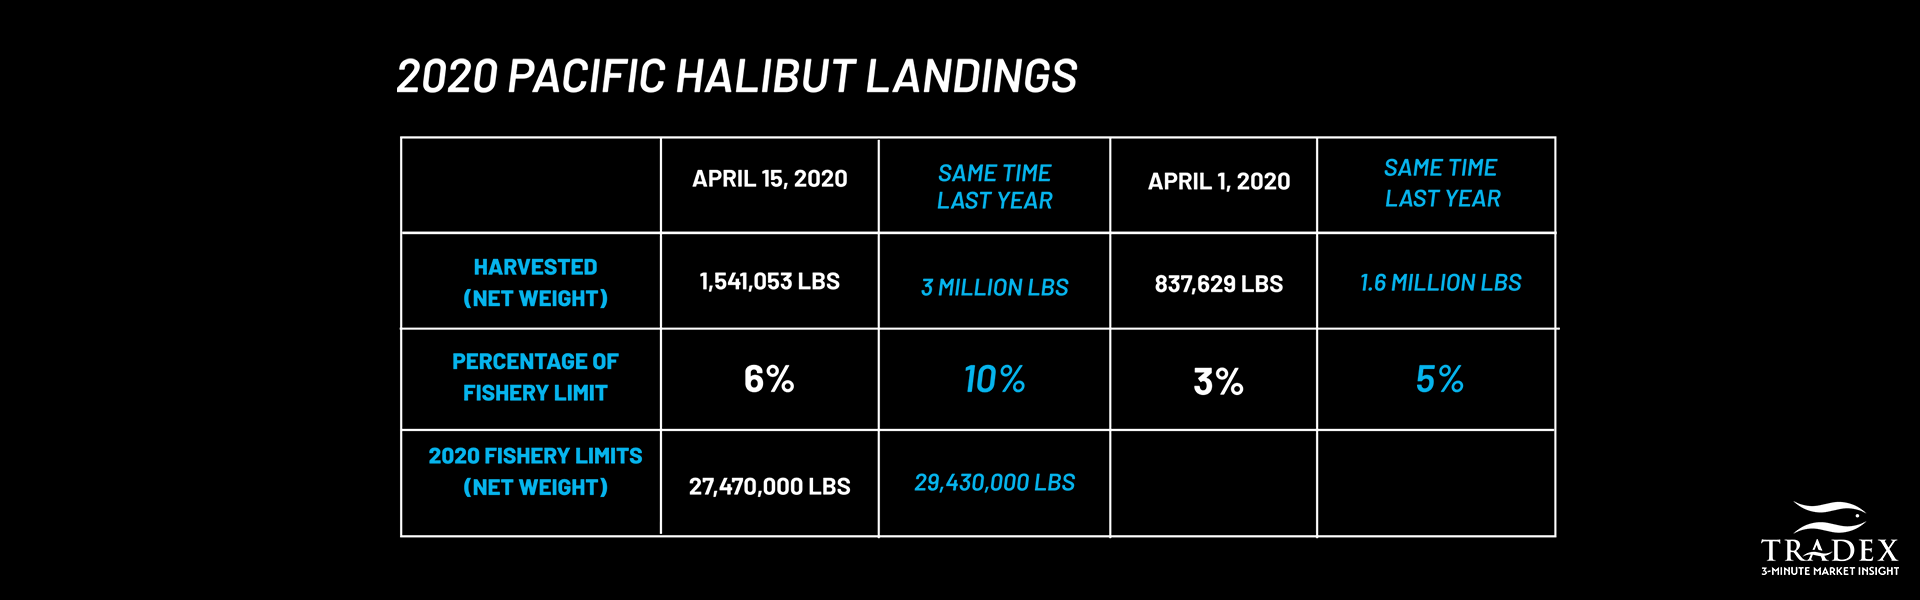 Halibut Fishery Data